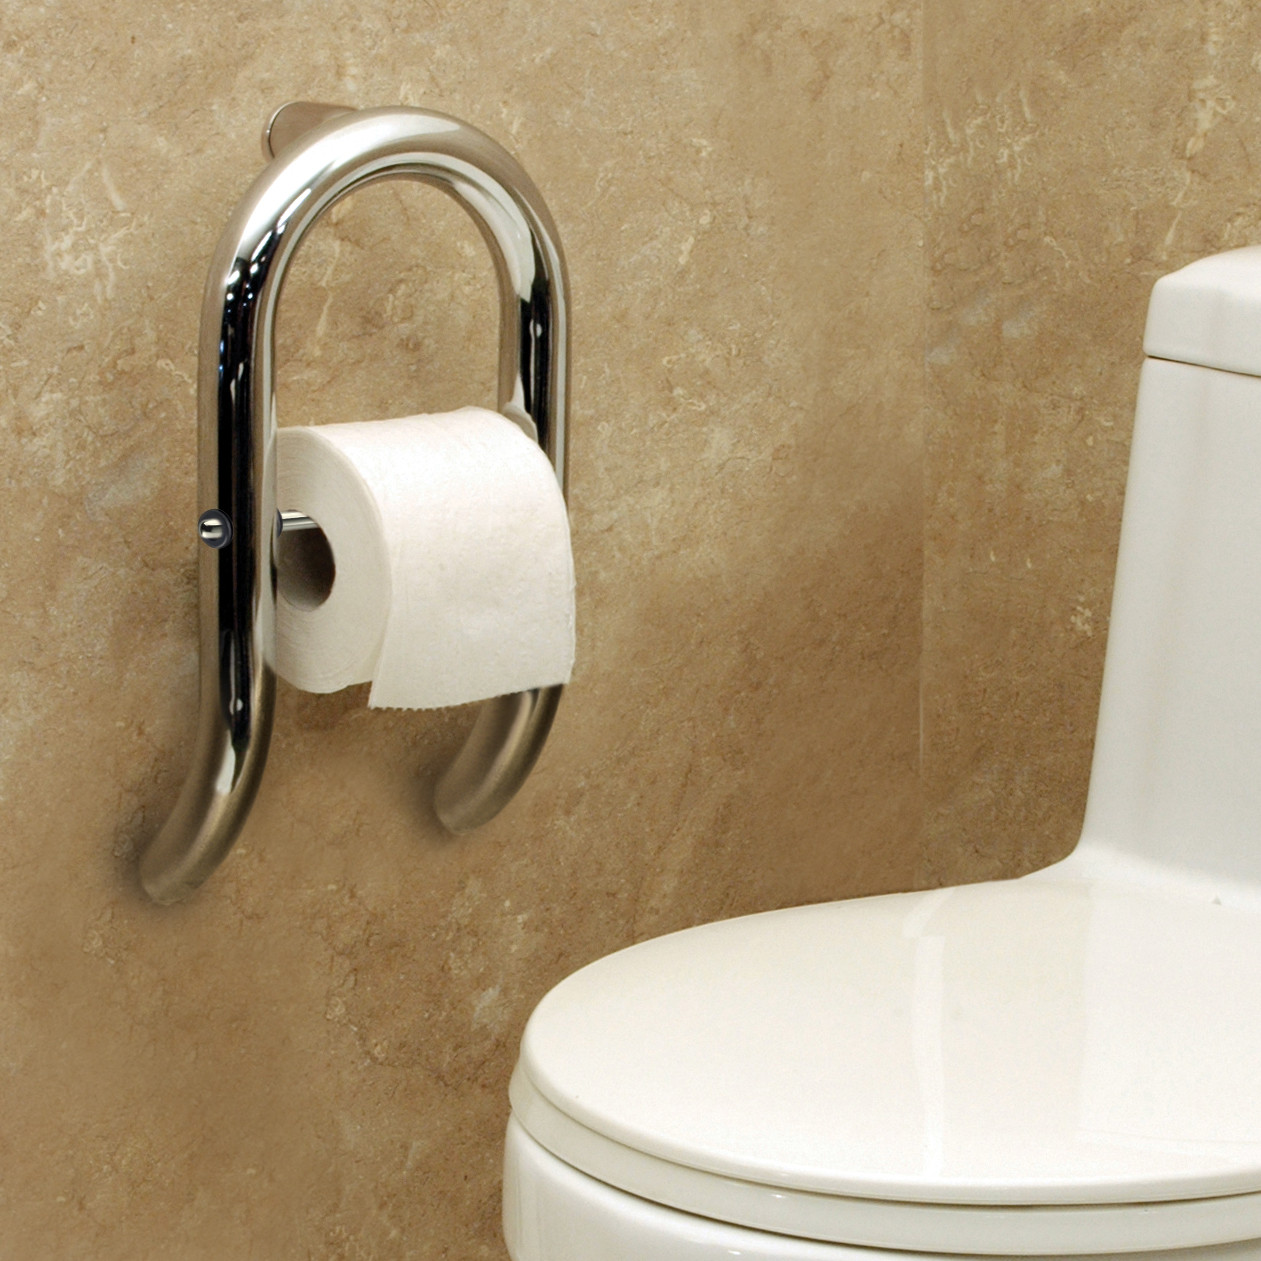 Roll Holder Grab Bar by Invisia | Integrated support rail ...